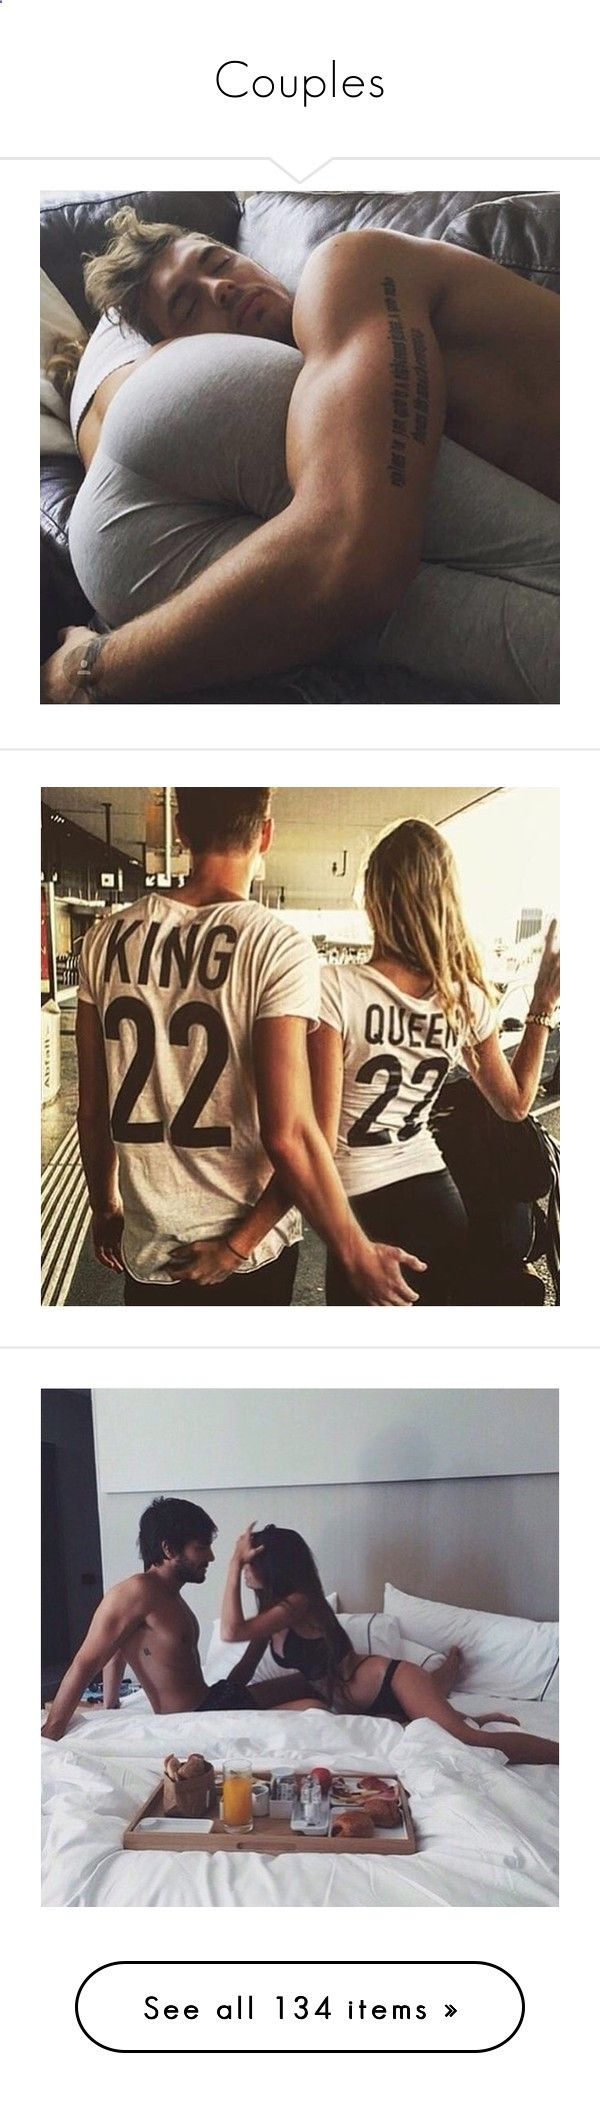 Couples by intimatechaos ❤ liked on Polyvore featuring couples, backgrounds, pictures, relationship goals, images, set decor, instagram, cute couples, phrase and quotes